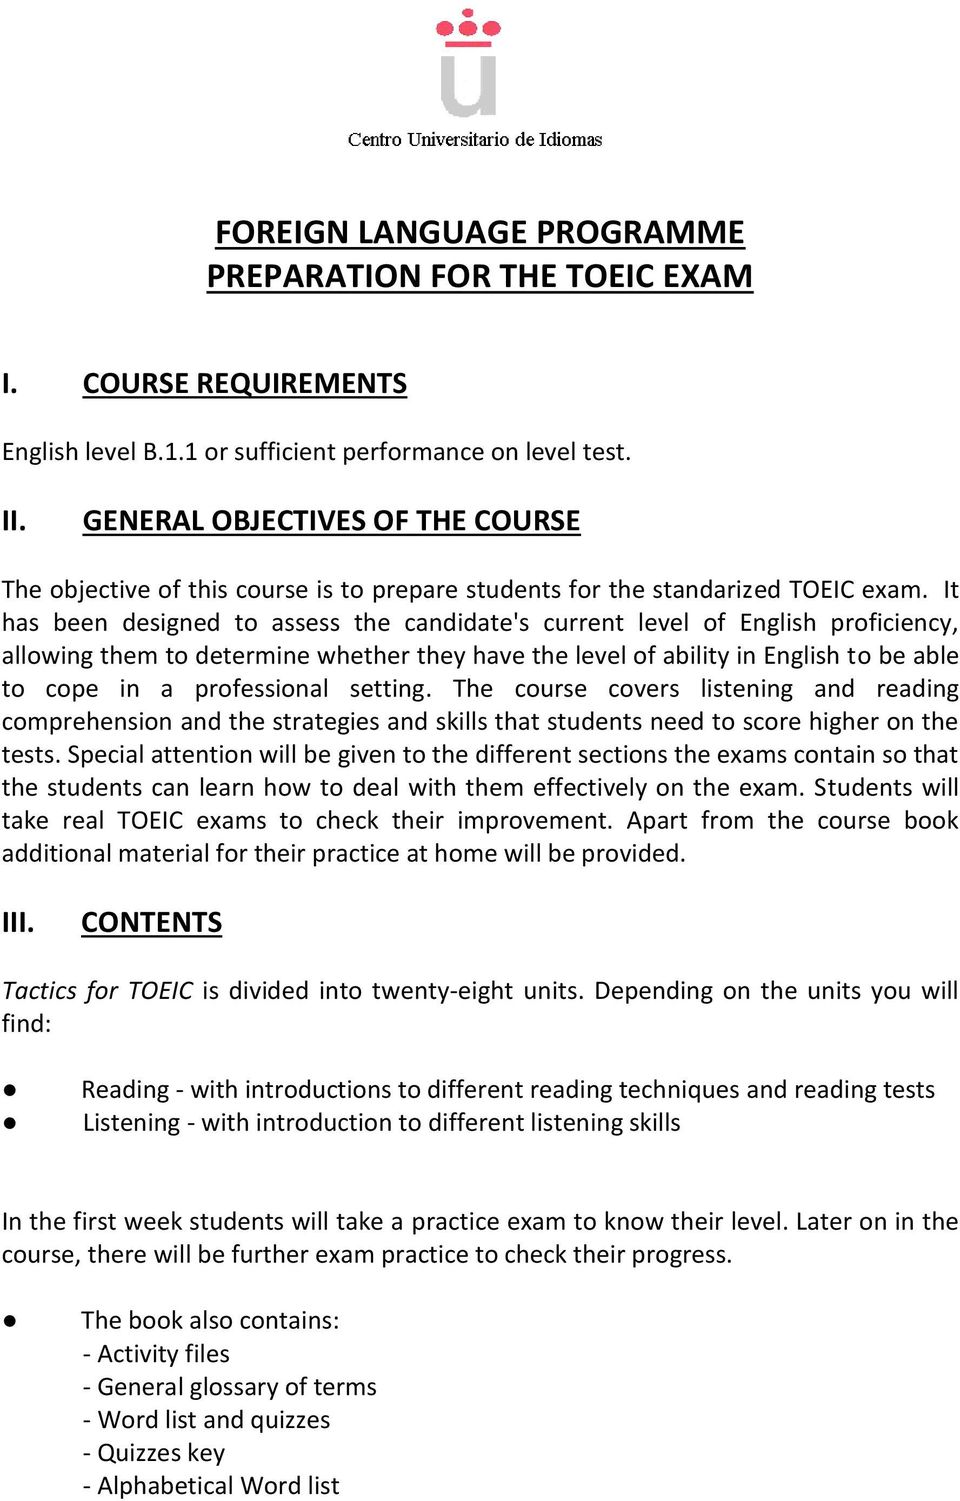 FOREIGN LANGUAGE PROGRAMME PREPARATION FOR THE TOEIC EXAM - PDF